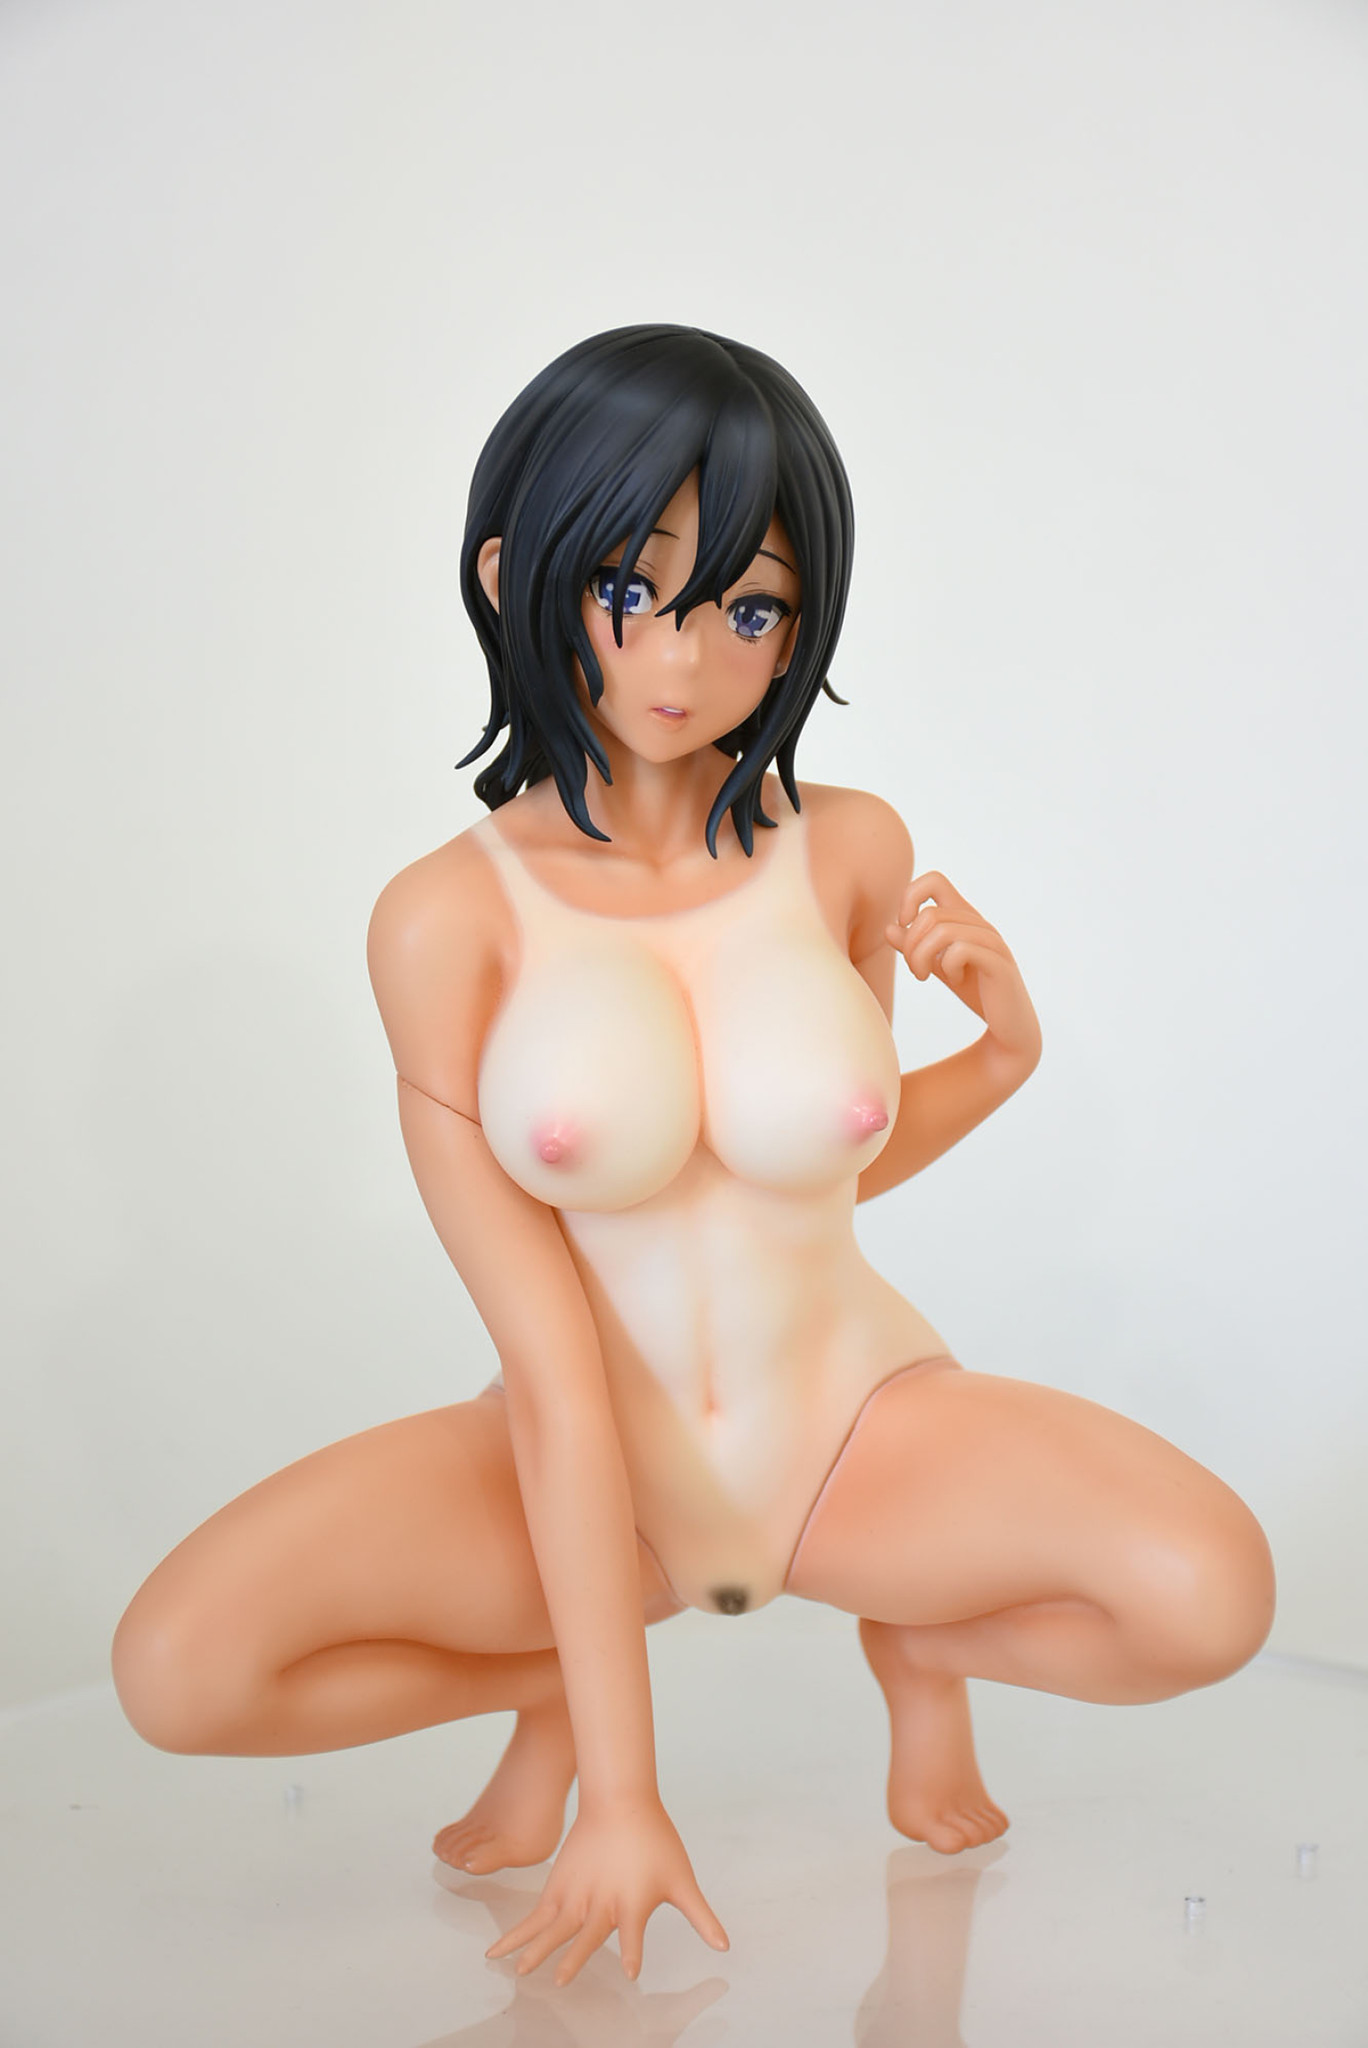 https://static.myfigurecollection.net/upload/pictures/2020/02/19/2391986.jpeg